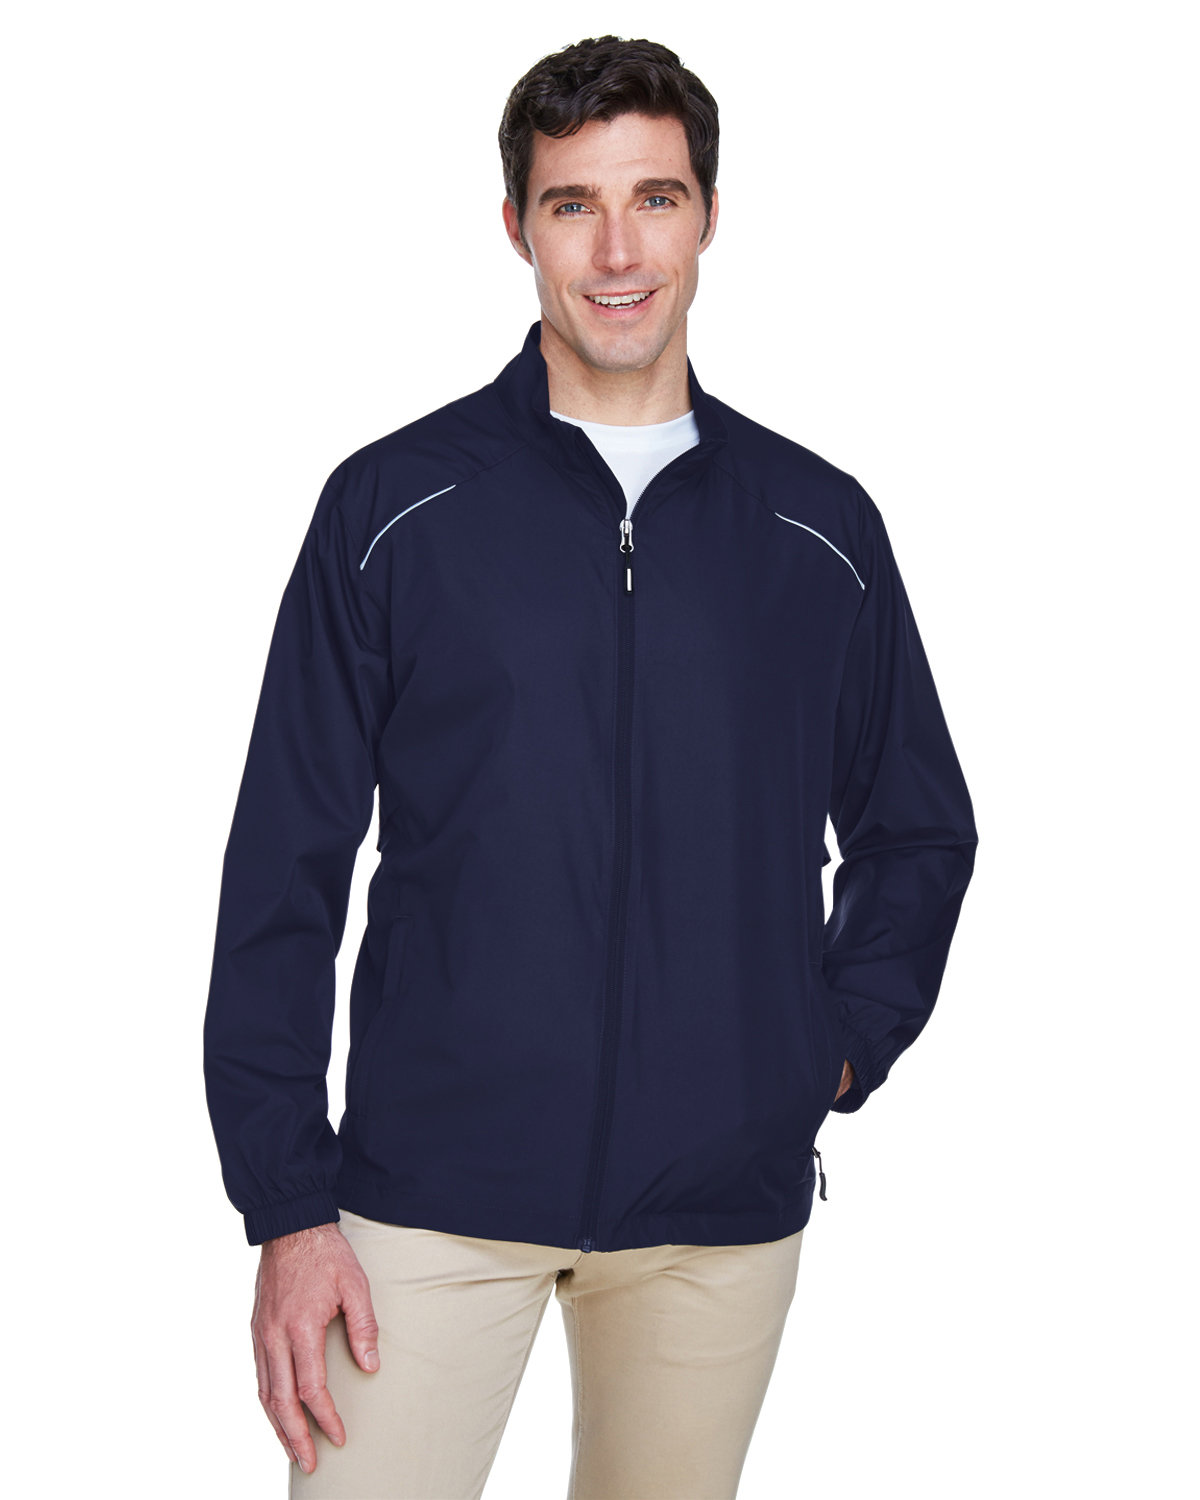 Core 365 Men's Motivate Unlined Lightweight Jacket CLASSIC NAVY